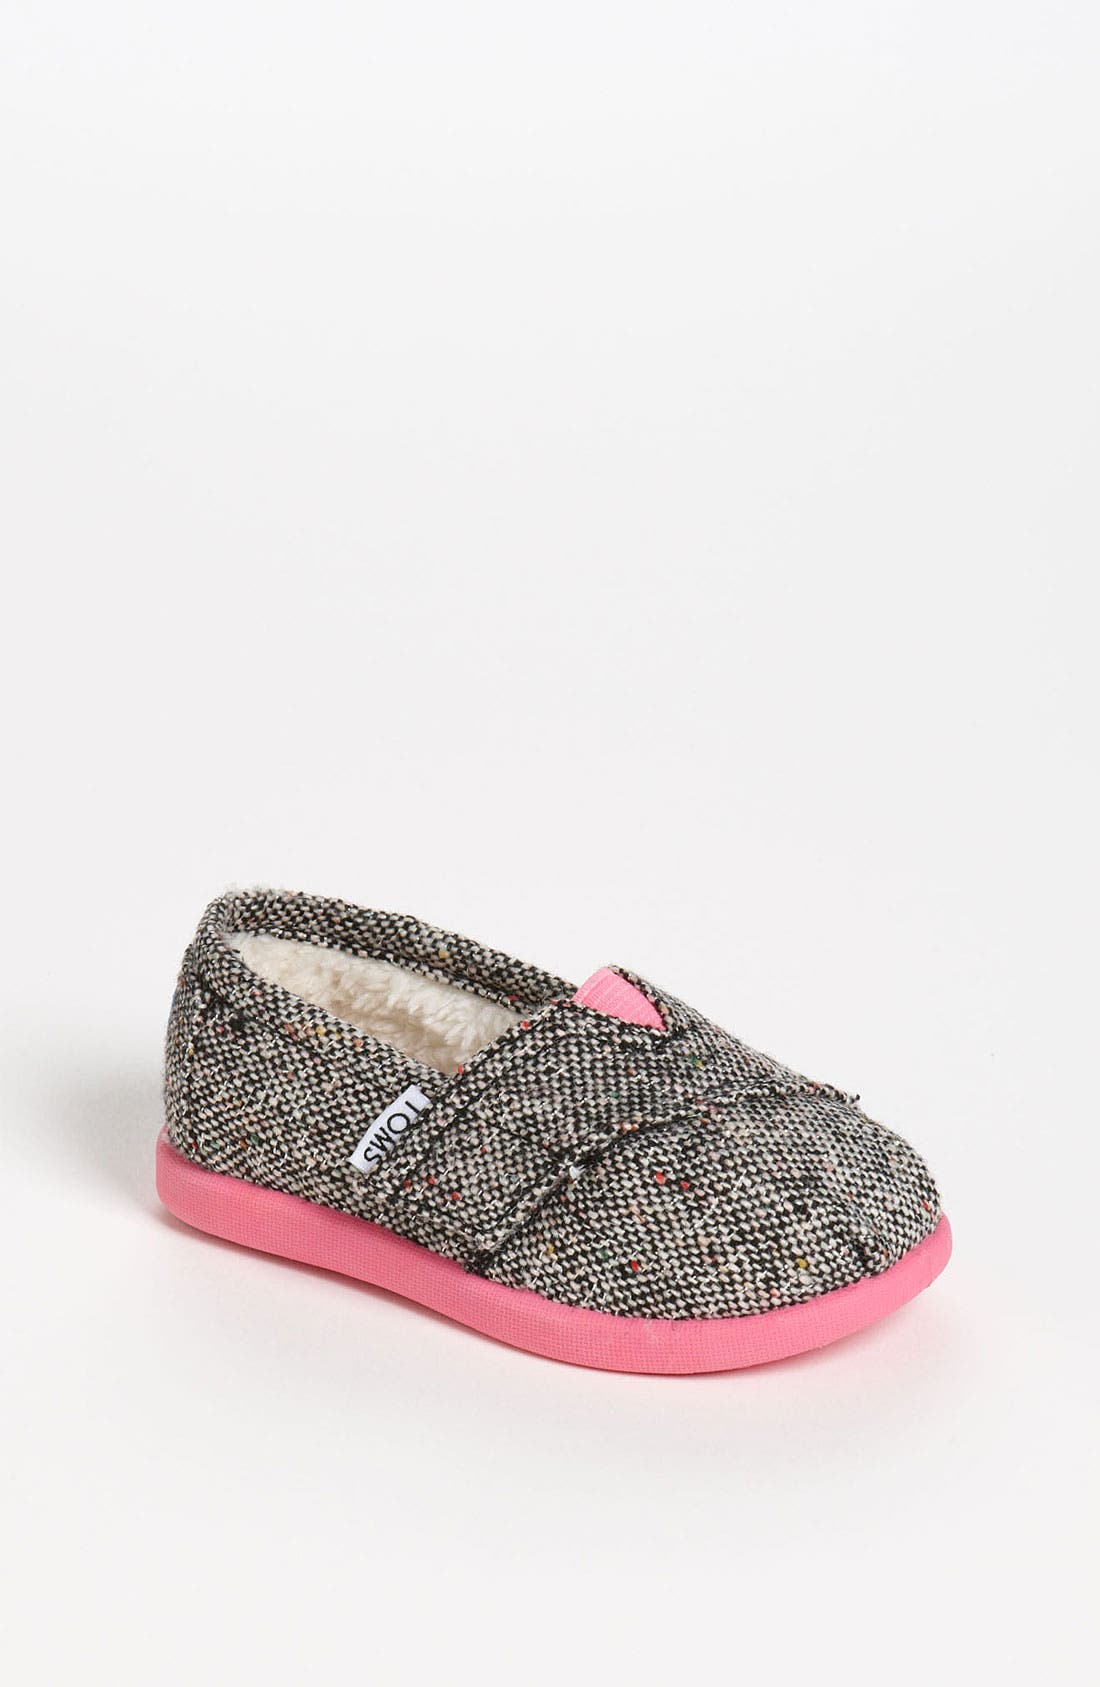 Alternate Image 1 Selected - TOMS 'Classic Tiny - Karsen' Slip-On (Baby, Walker & Toddler)